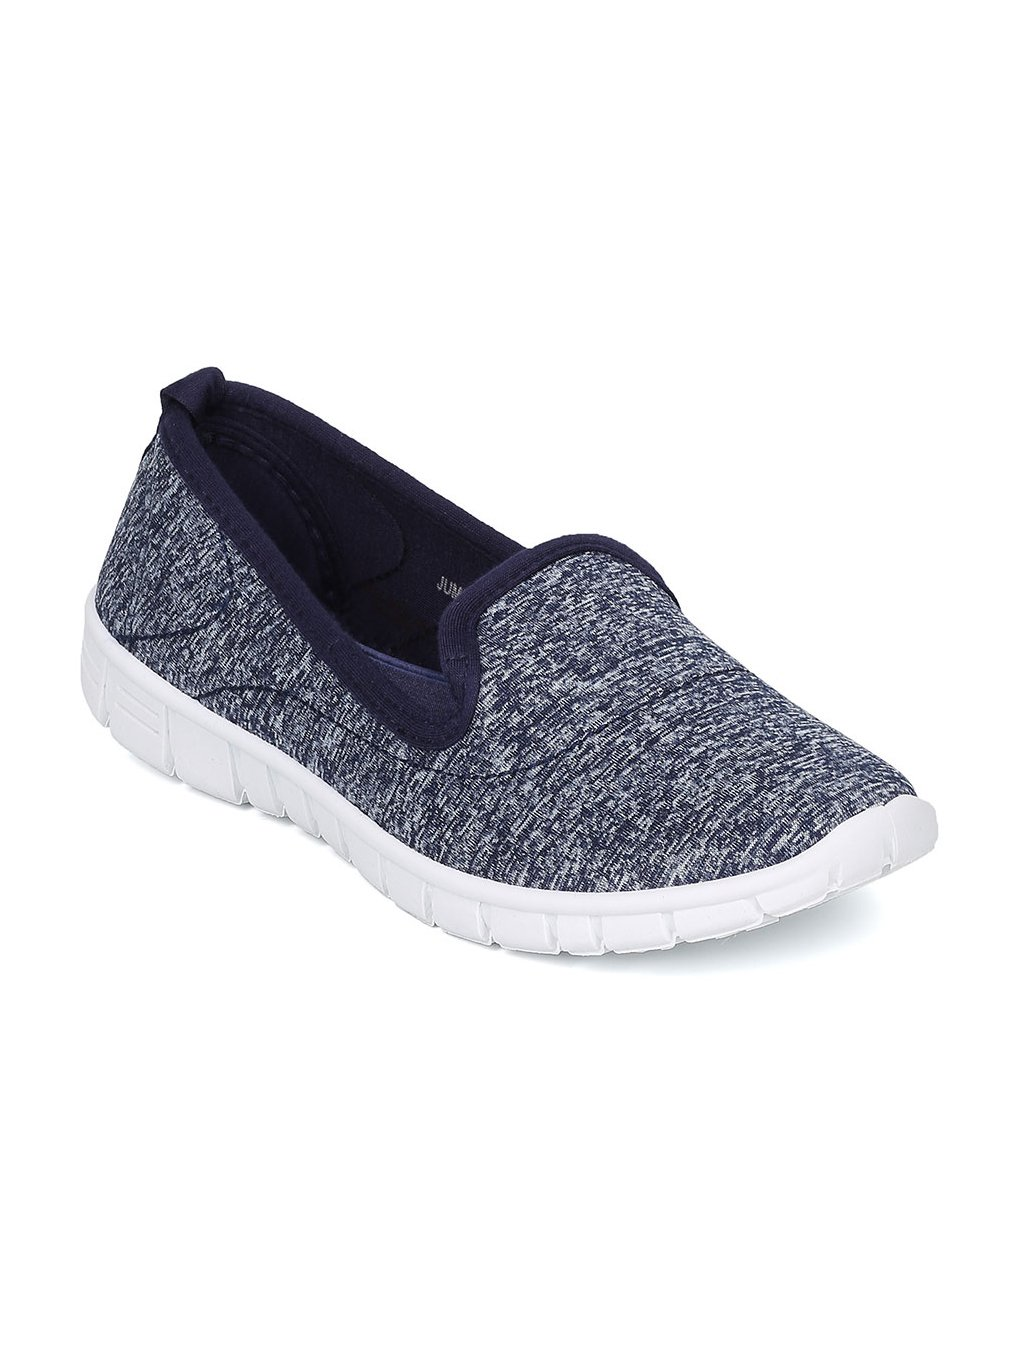 Alrisco Fabric Heathered Slip On Cushioned Memory Foam Padding Walking Sneaker HA54 - Navy (Size: 6.5)